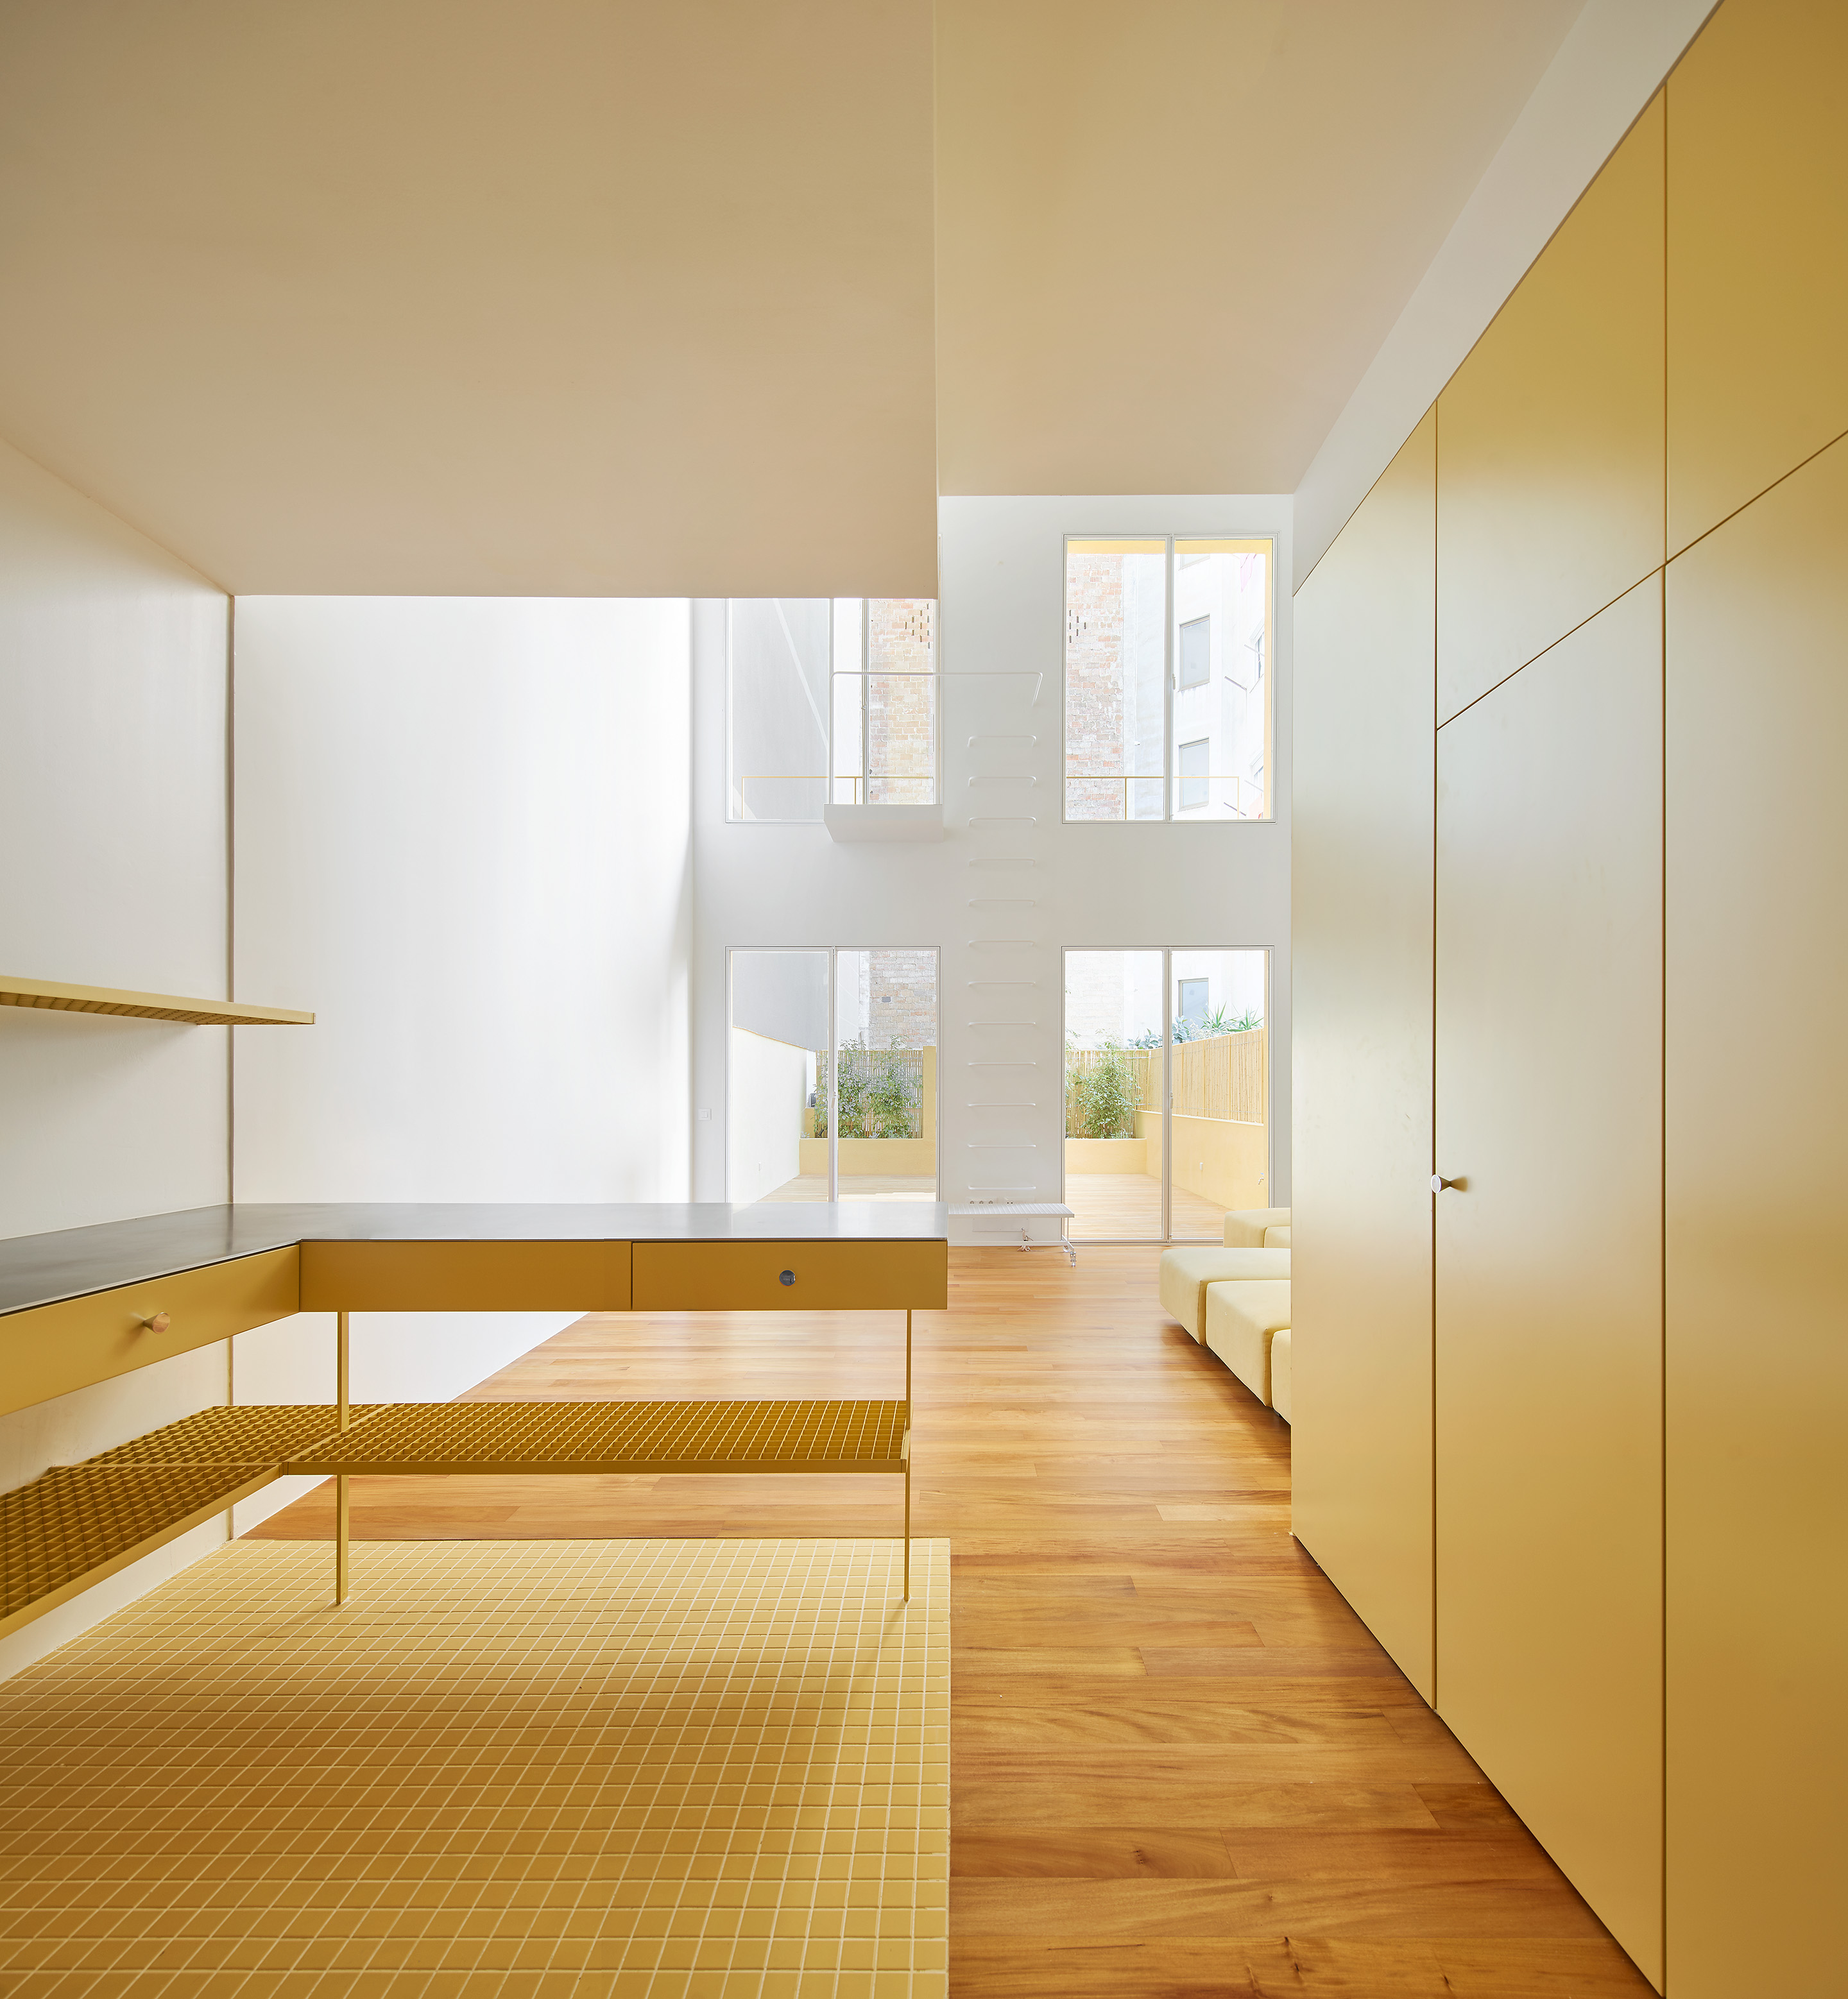 Bright apartment with large windows and yellow surfaces.